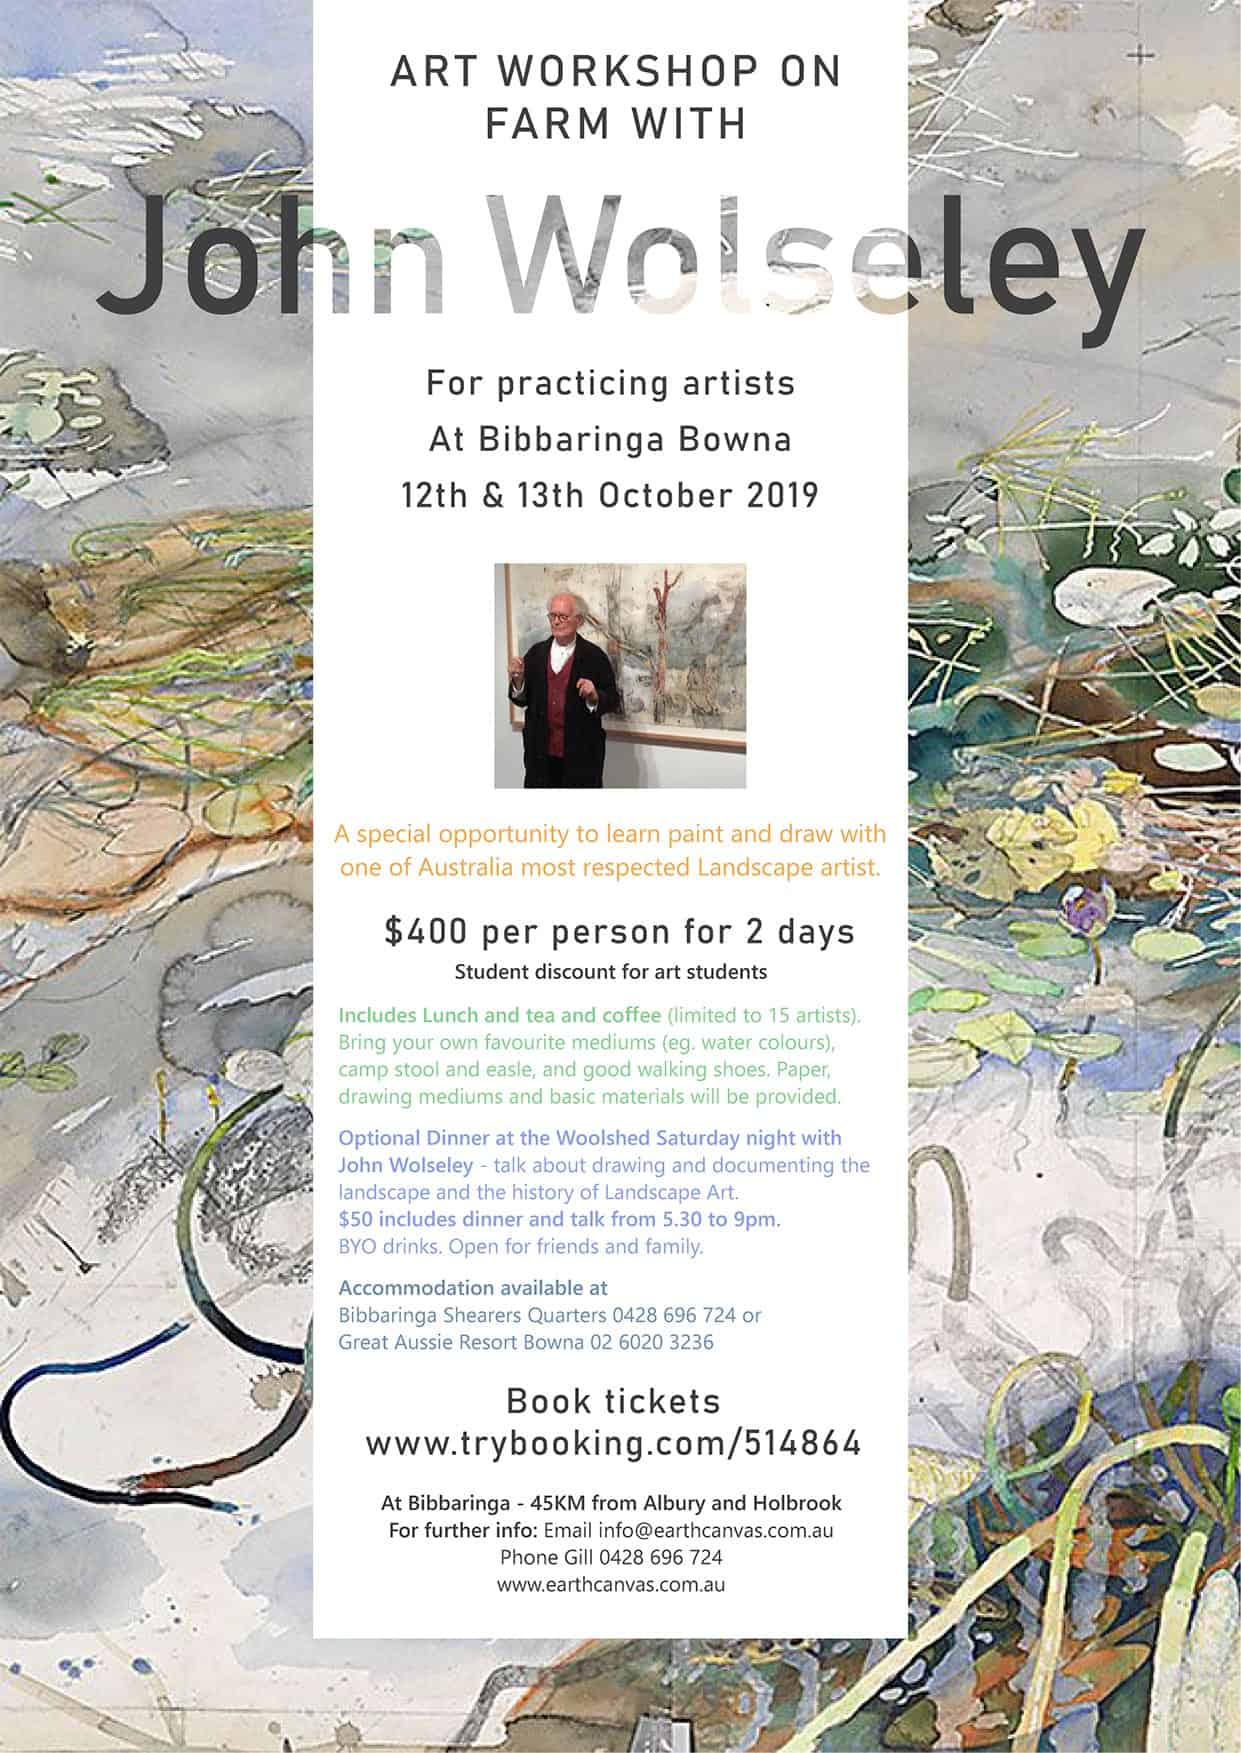 John-Wolseley-Art-Workshop